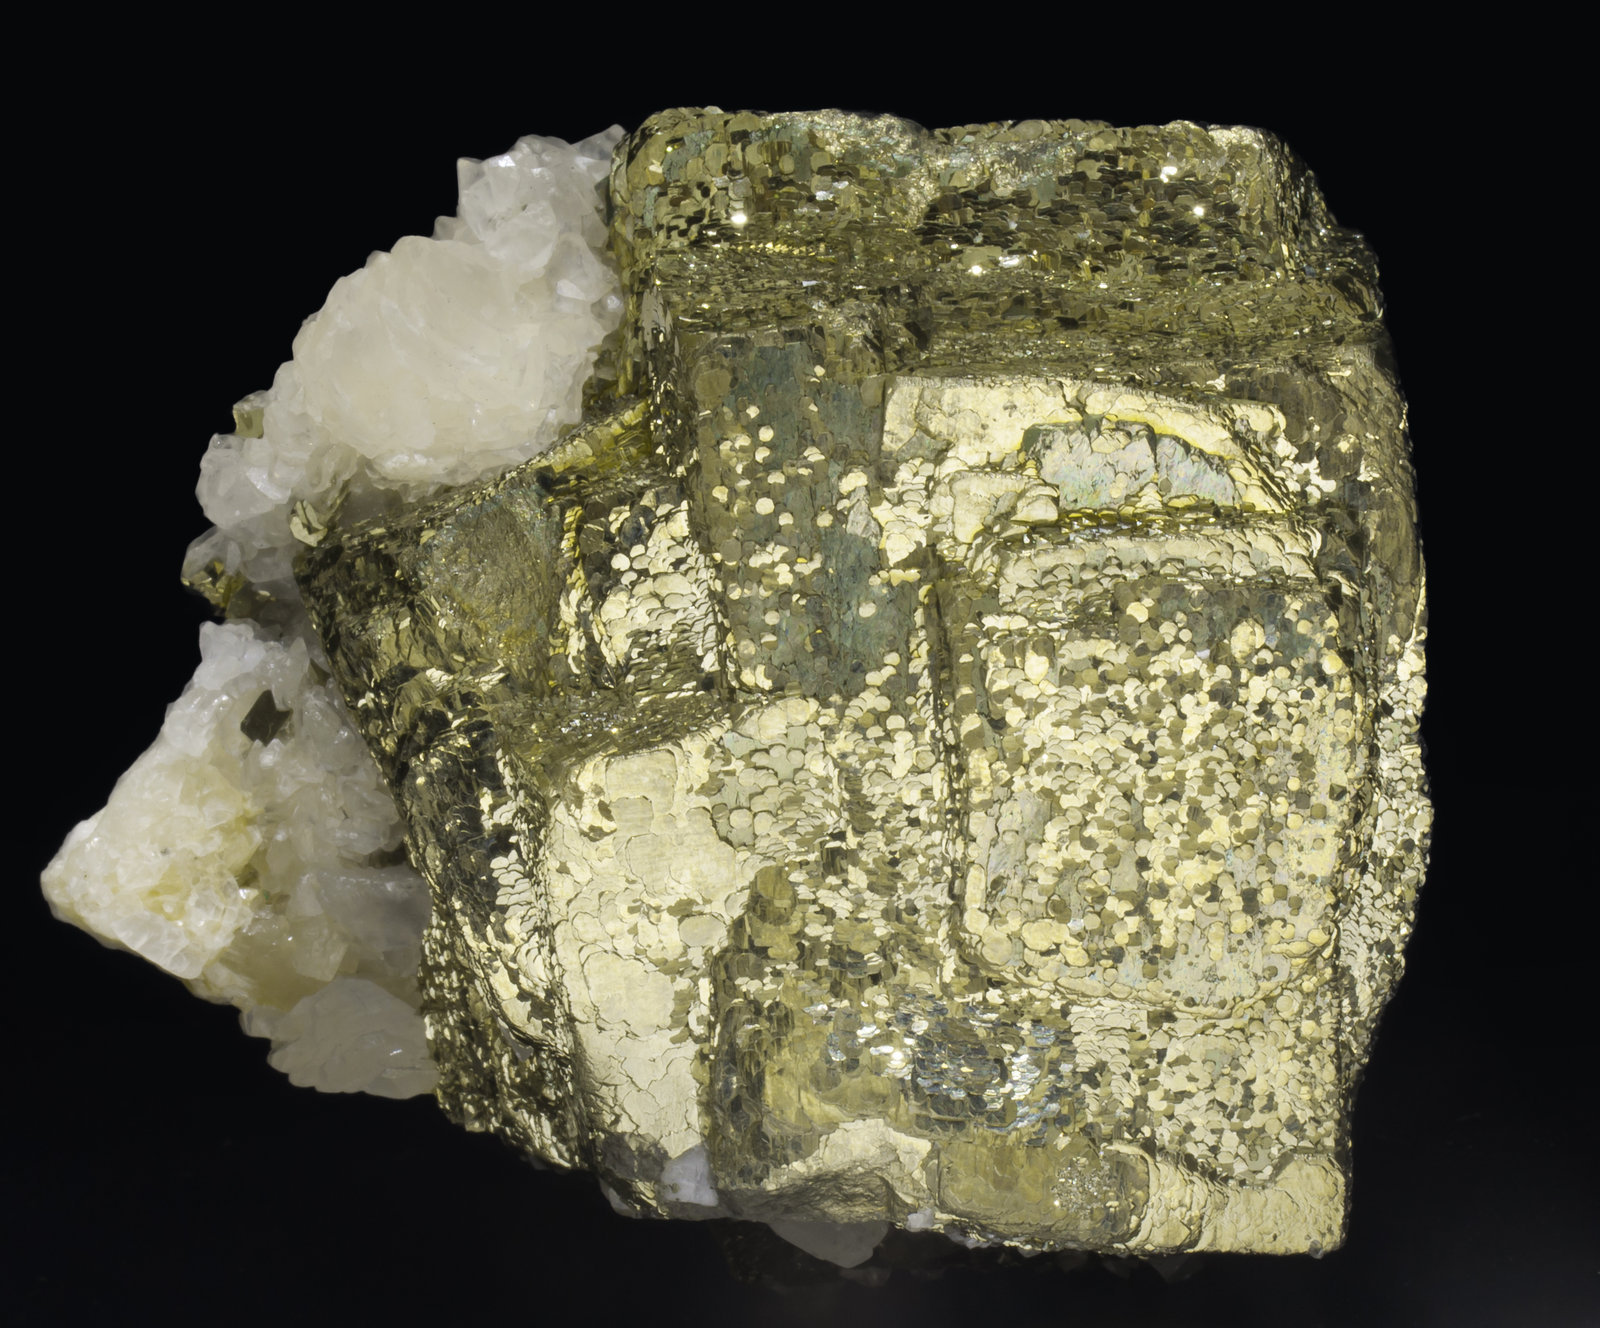 specimens/s_imagesAE5/Pyrite-EY98AE5s.jpg